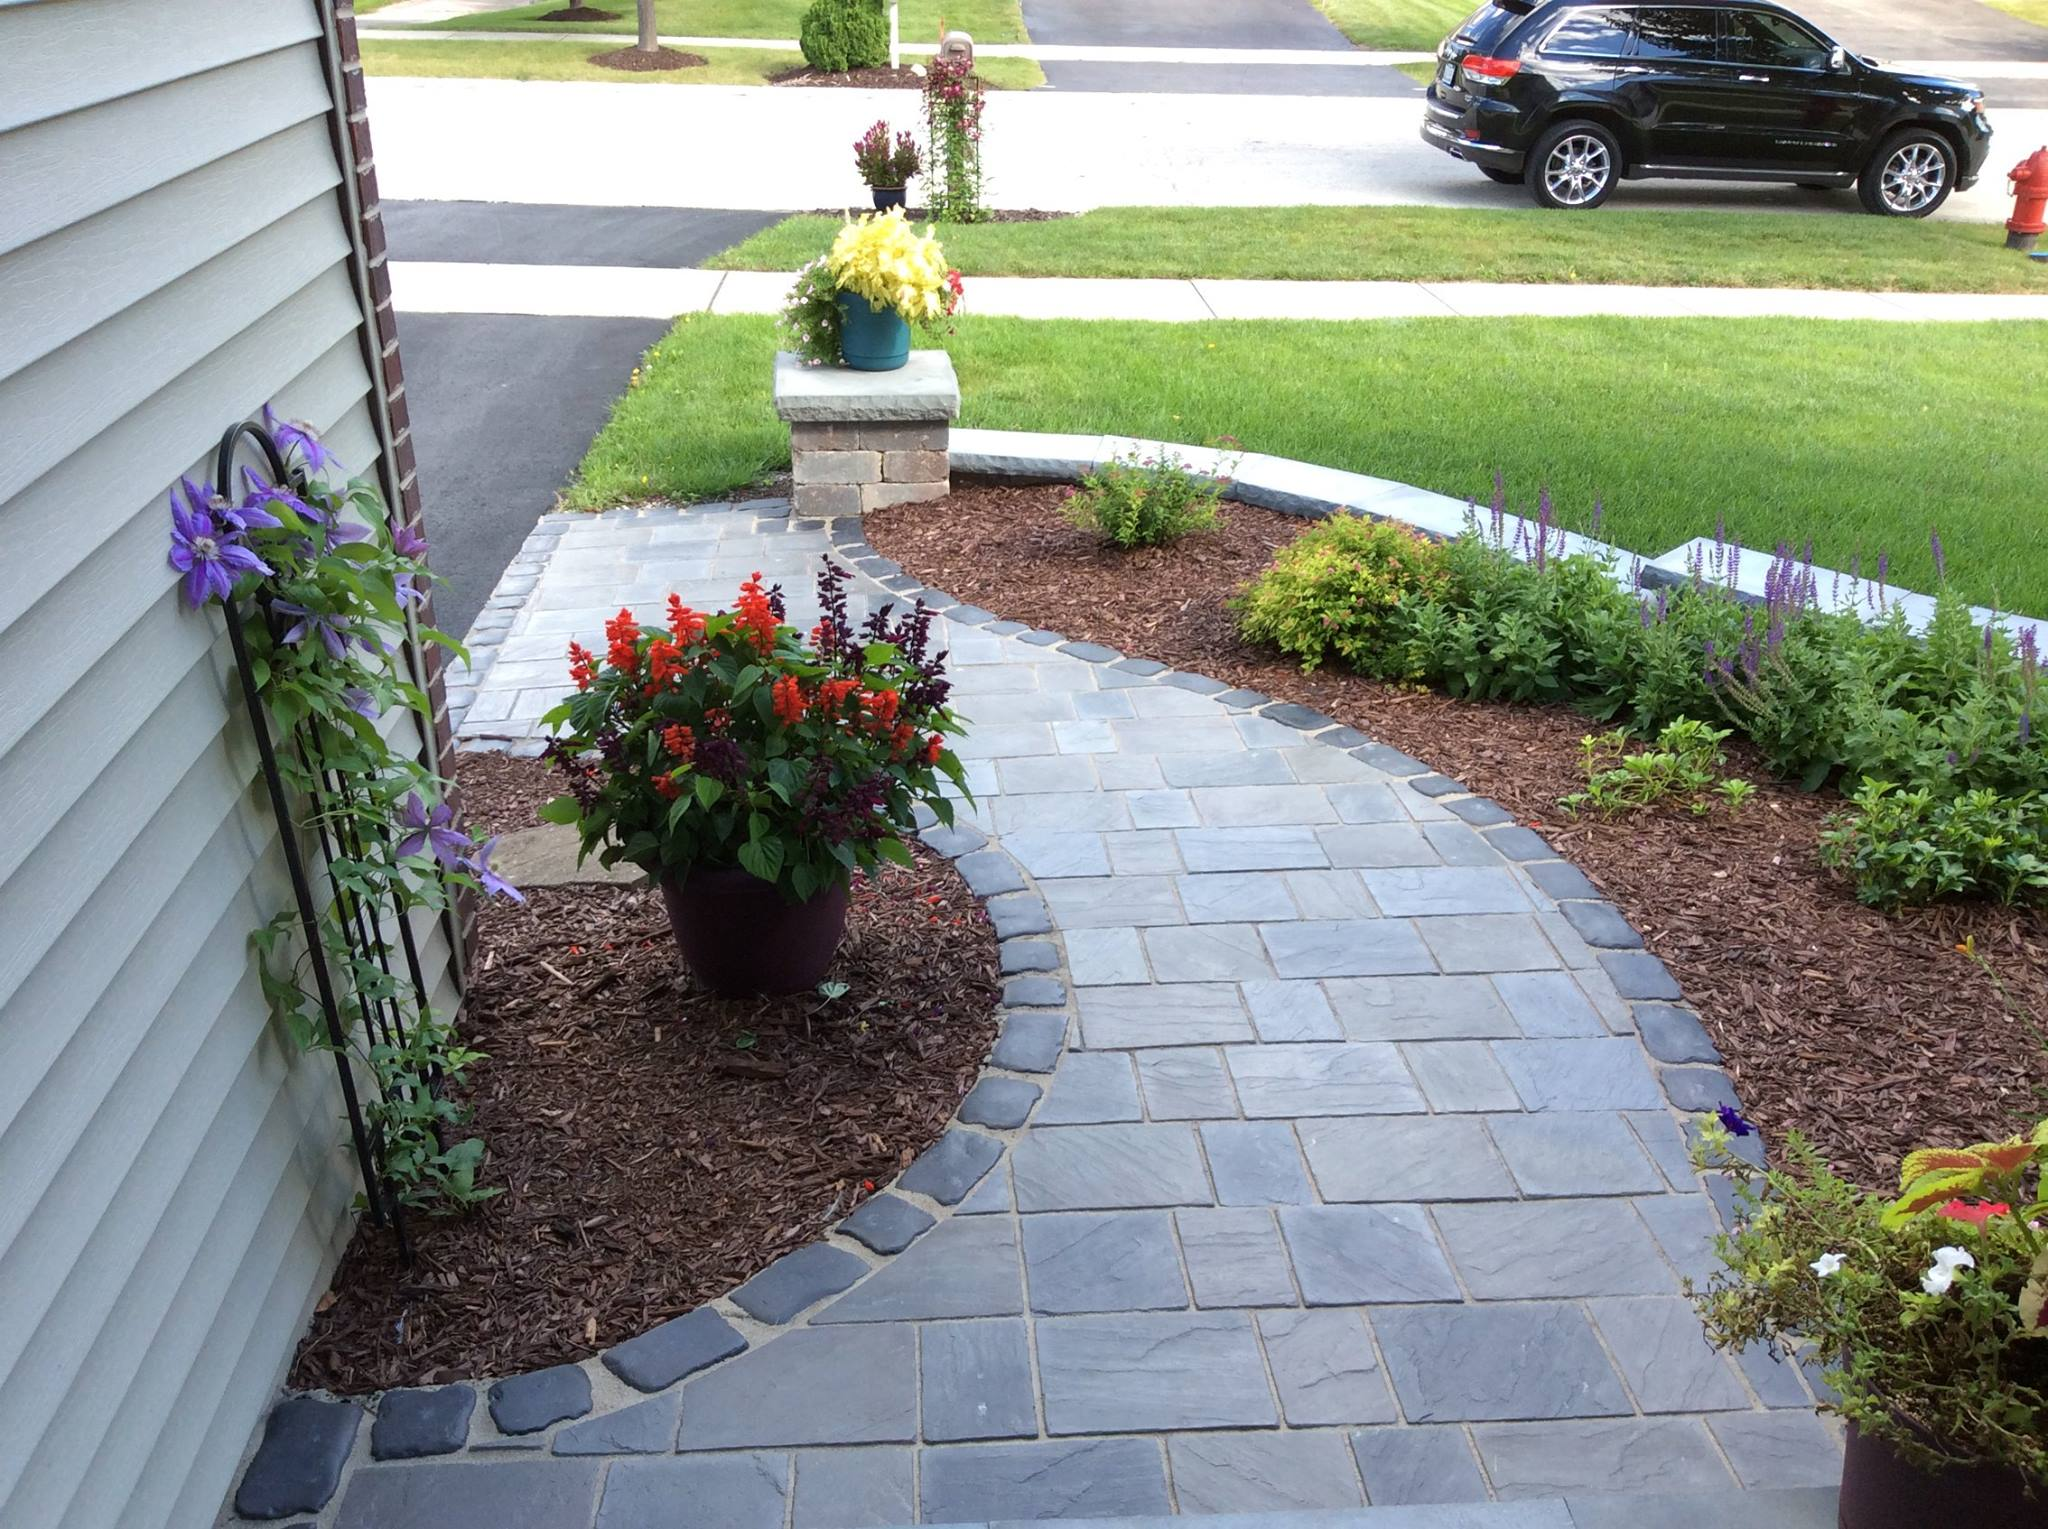 Naperville, Illinois brick paving, including brick patio and driveway